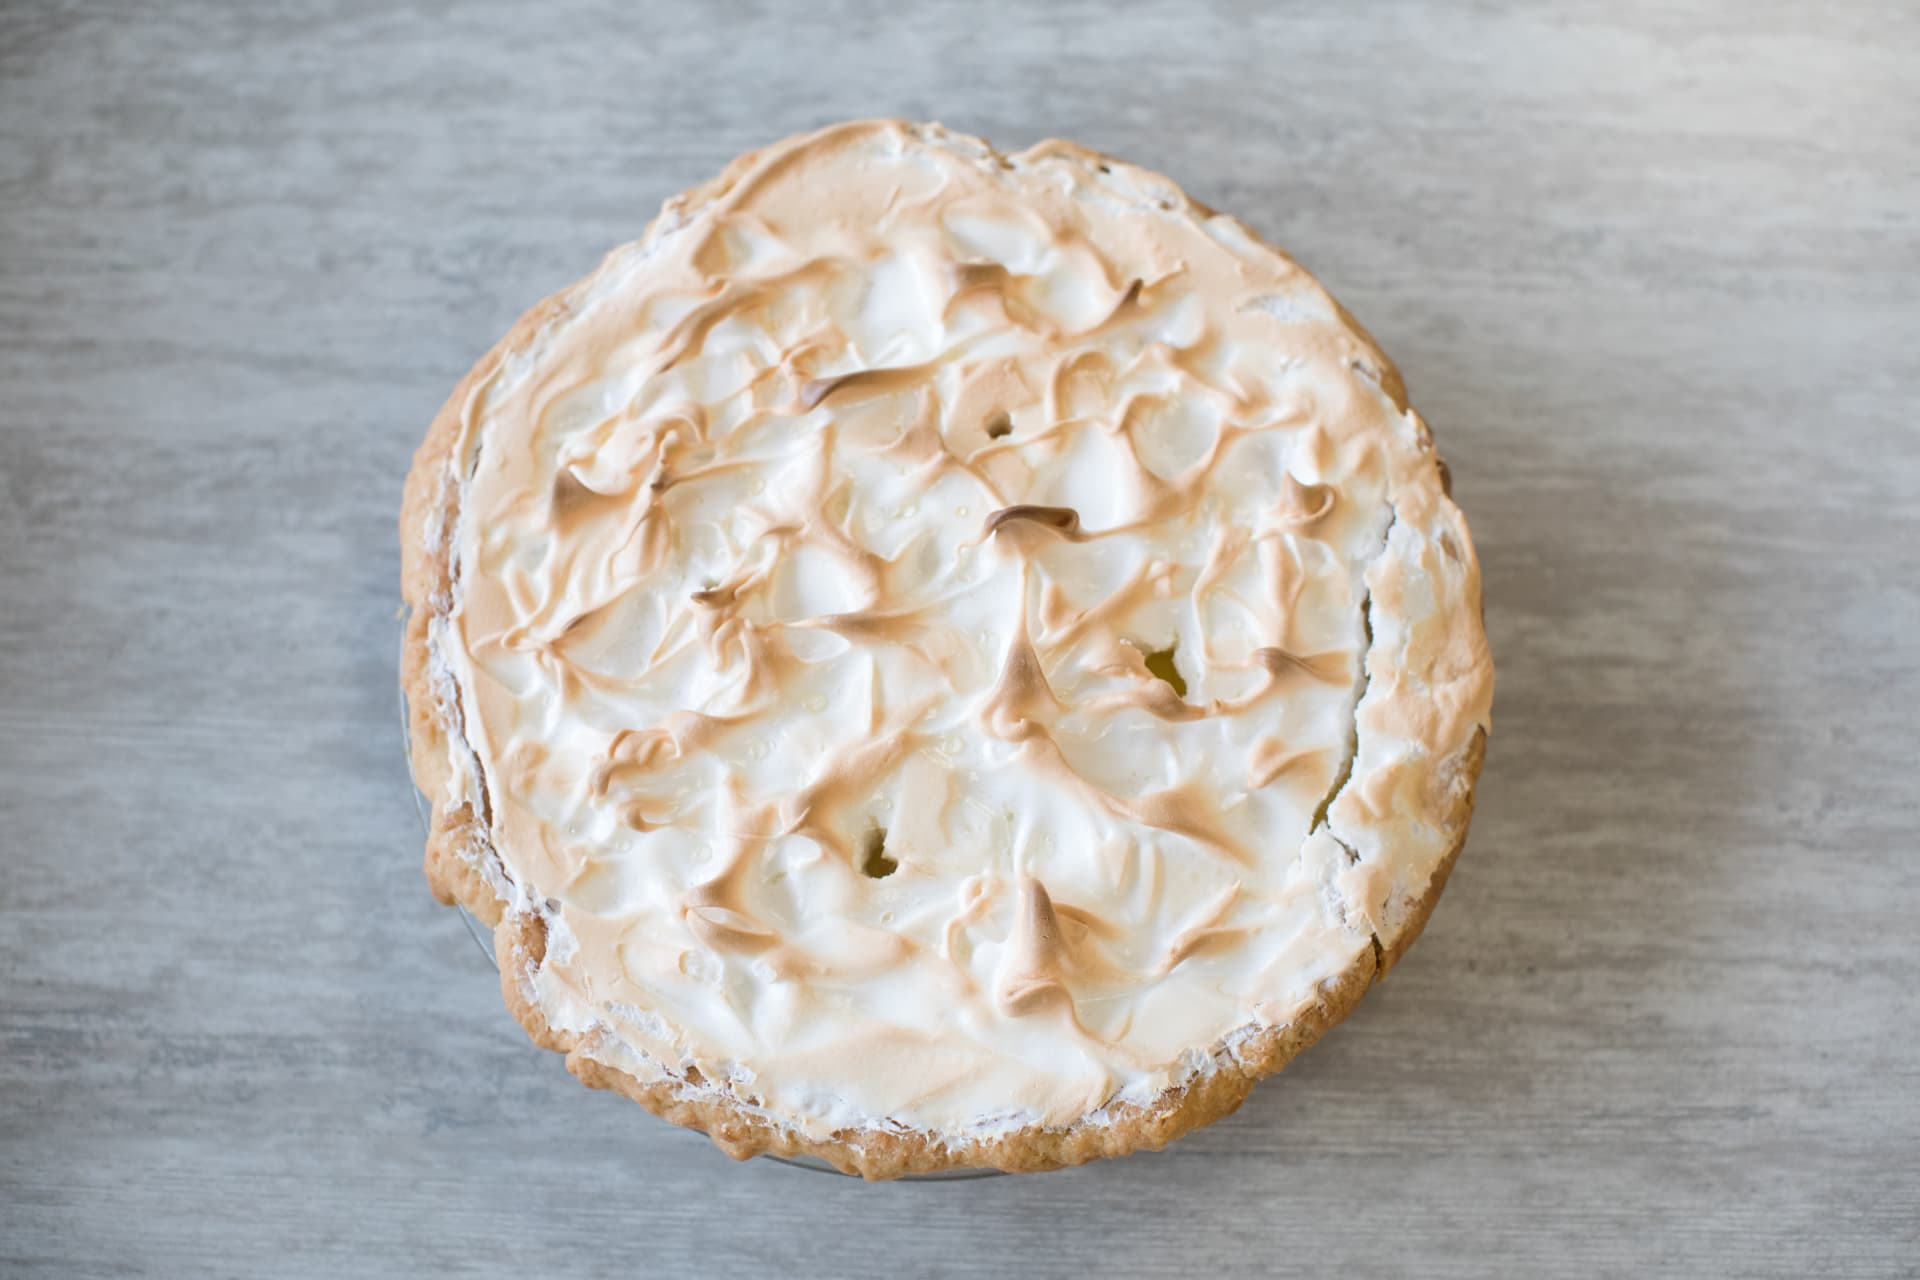 Whole Homemade Pies